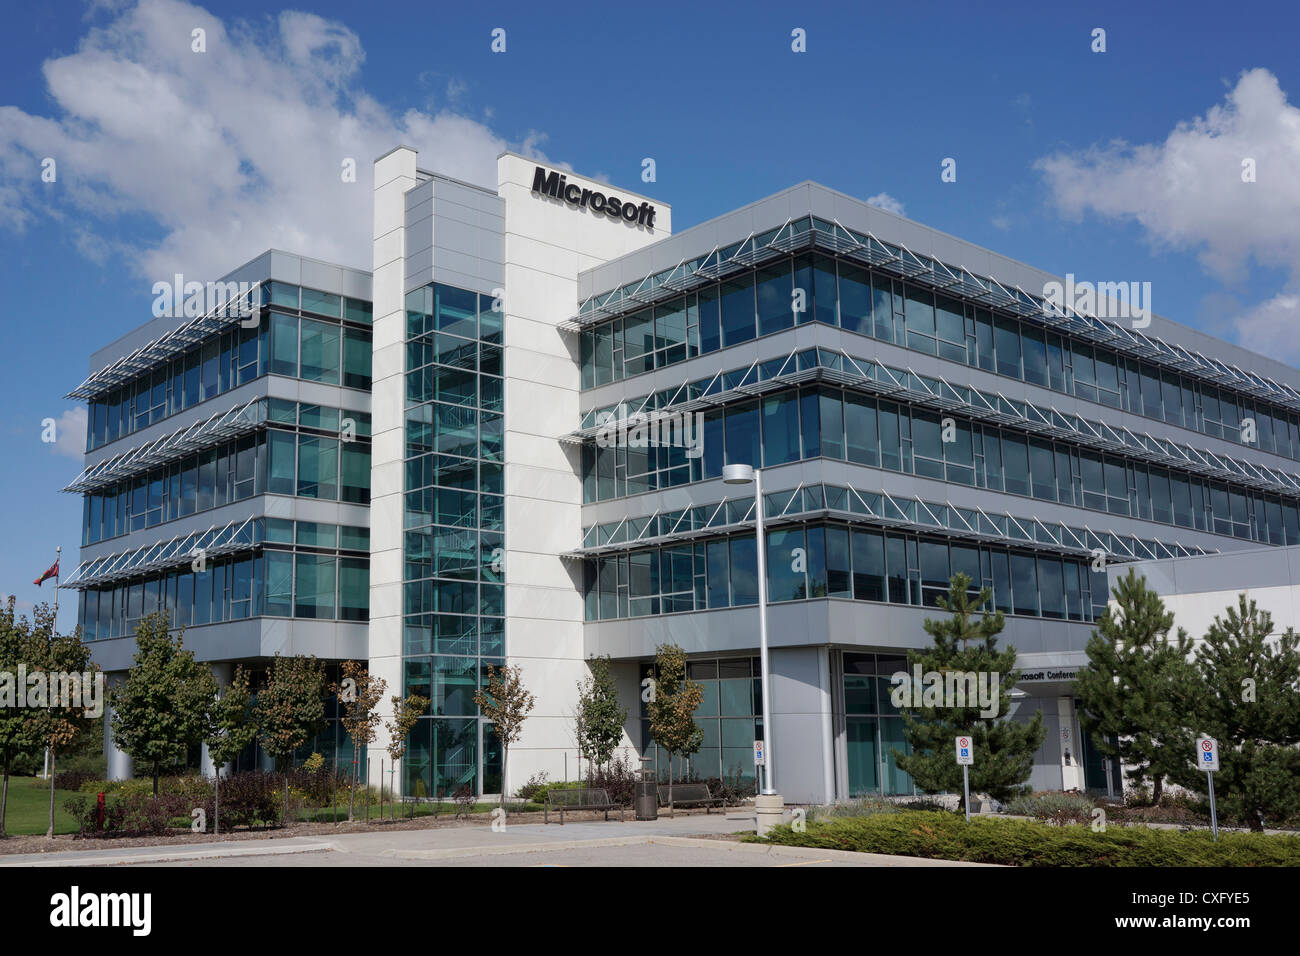 microsoft office building. Microsoft Office Building, Mississauga, Canada Building T